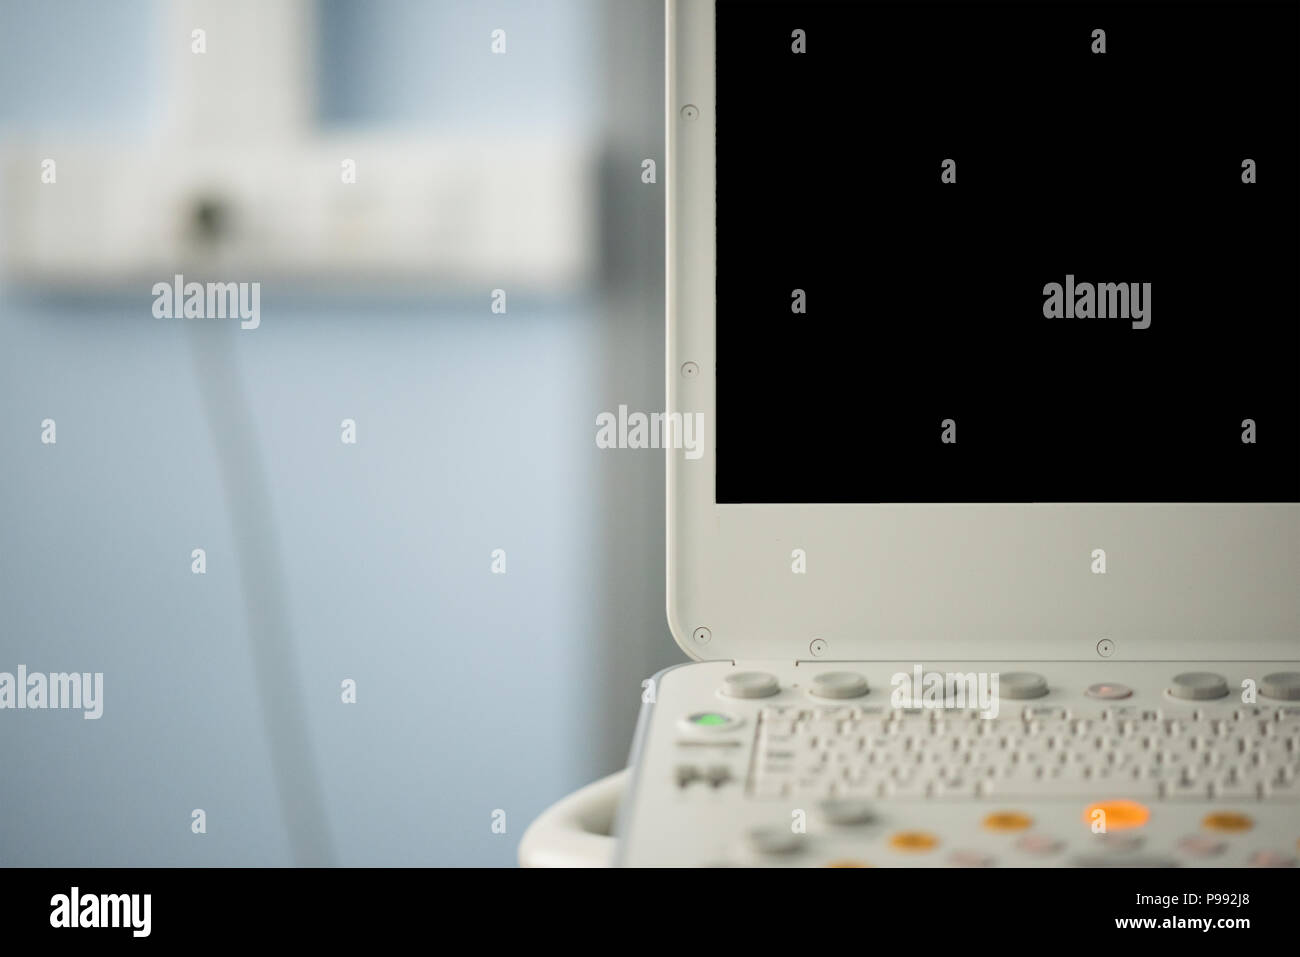 Black screen of the ultrasonic device, there is no image on the monitor. - Stock Image